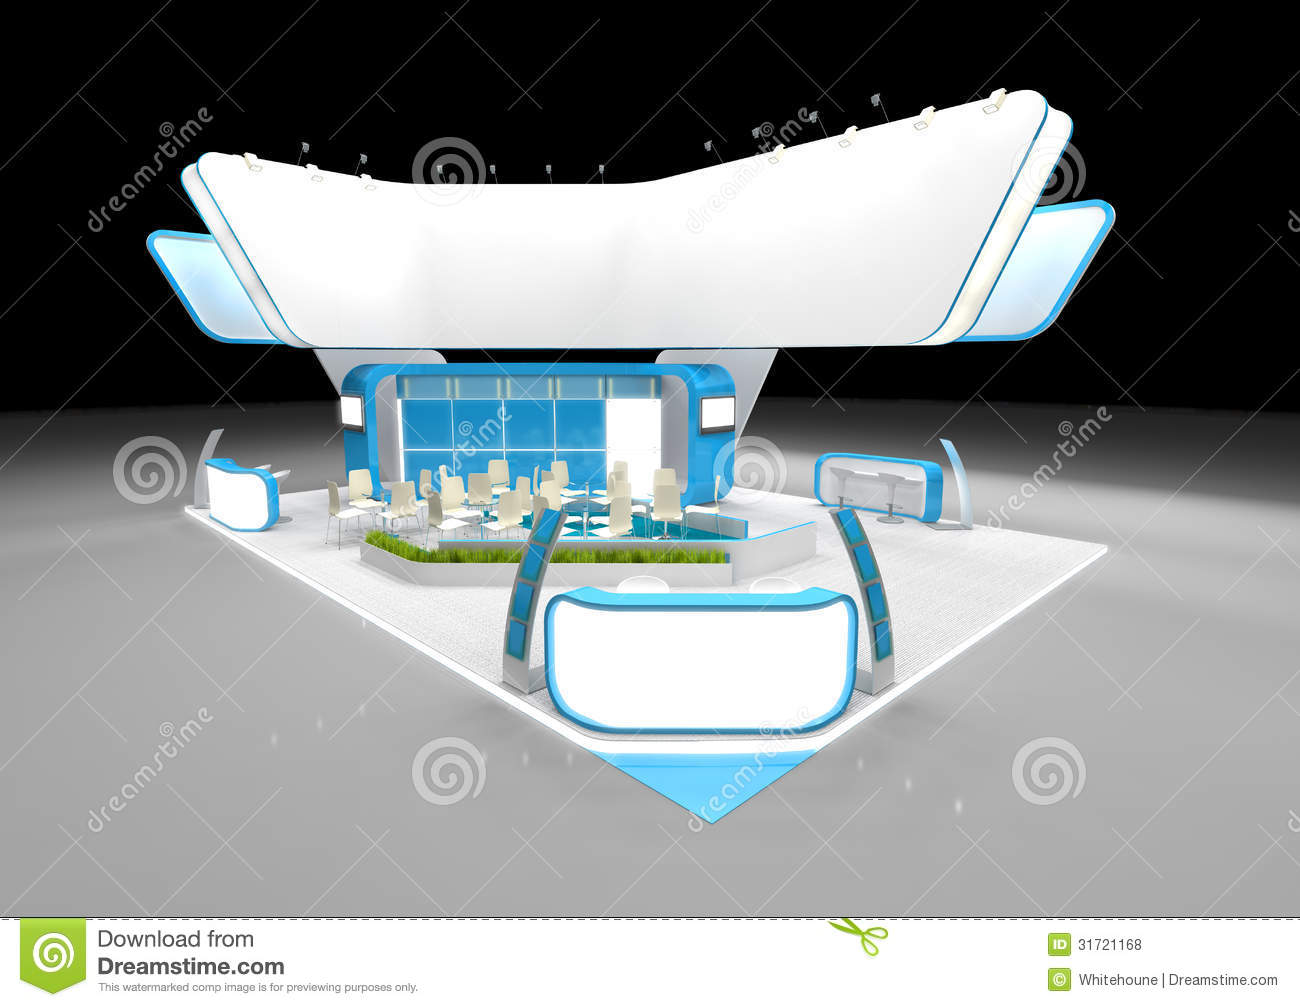 Exhibition Stand Design Download : Exhibition stand design stock illustration